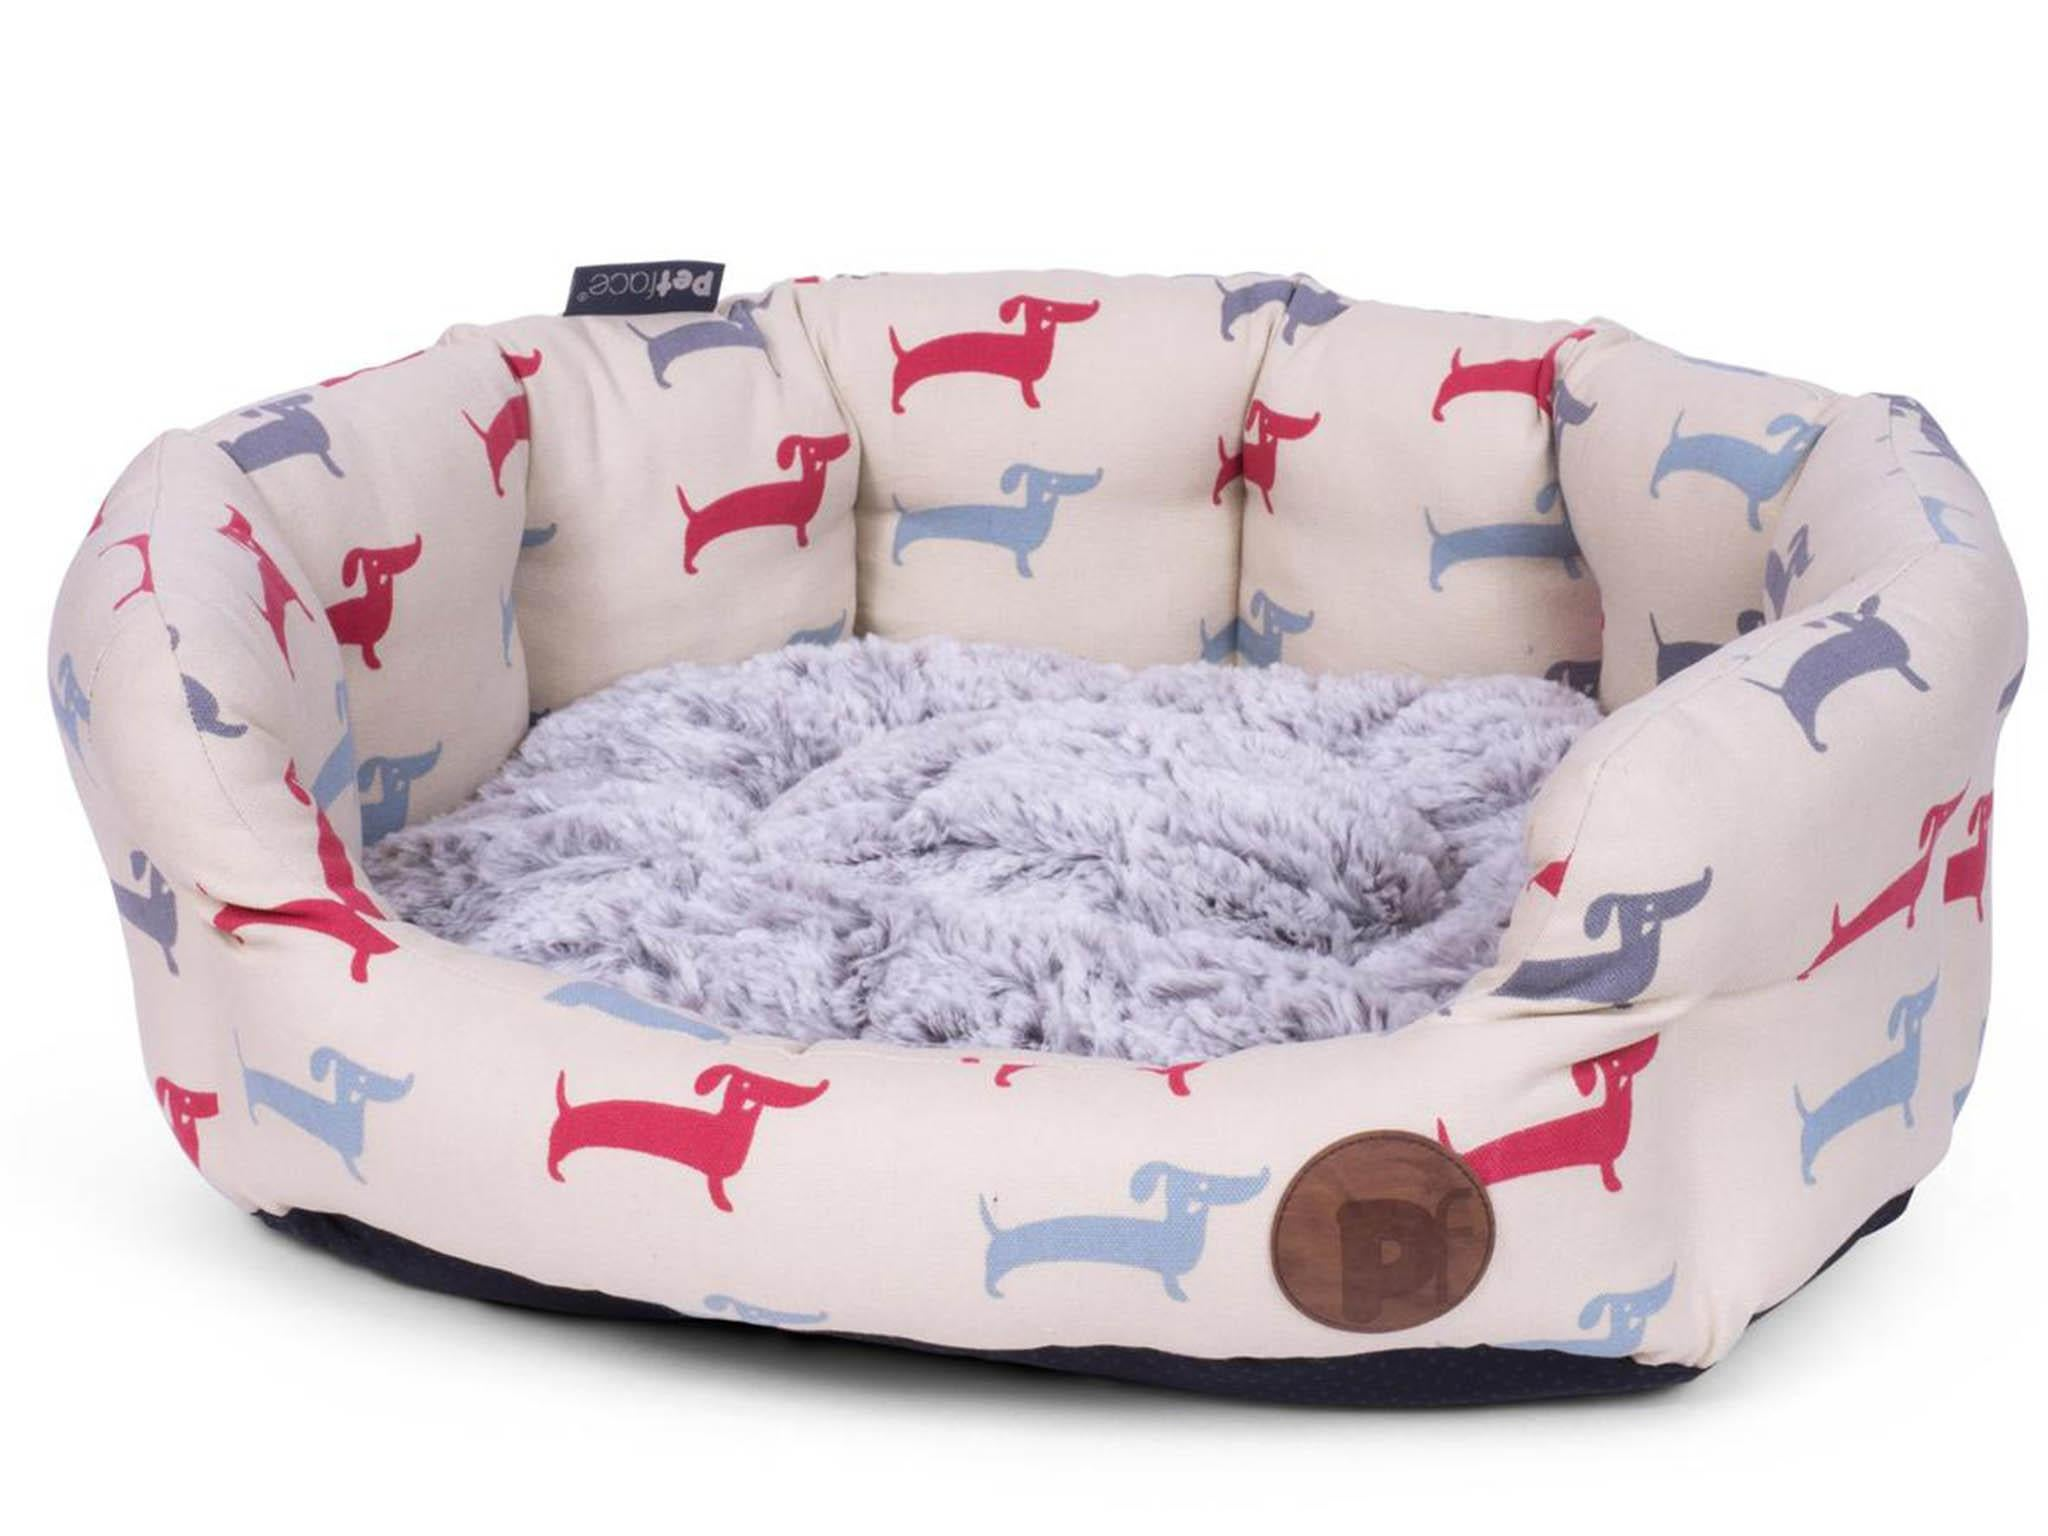 ad37a09f7917 10 best dog beds | The Independent